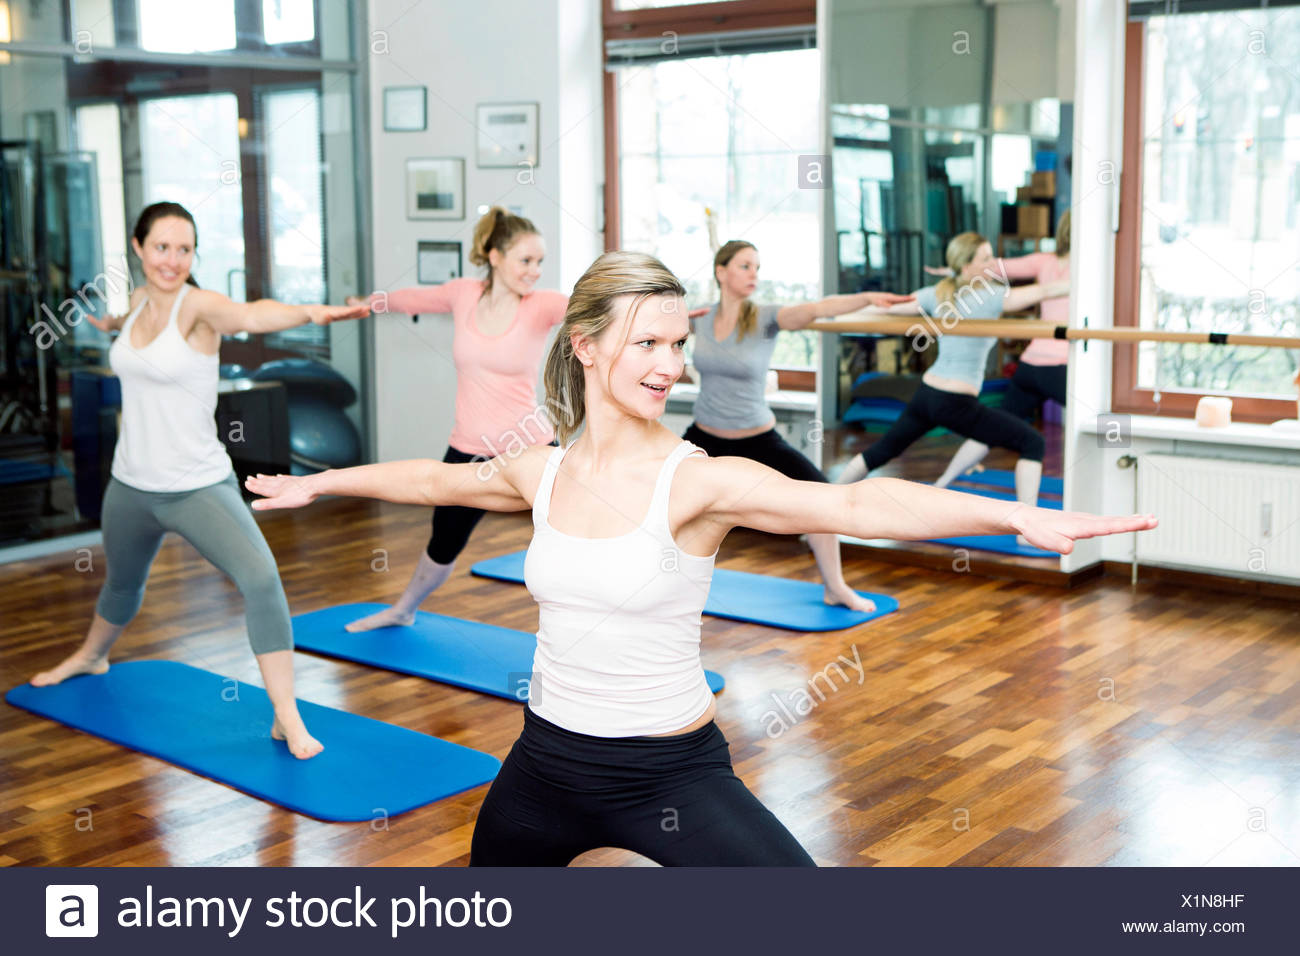 Group of women doing Pilates exercises arms outstretched - Stock Image